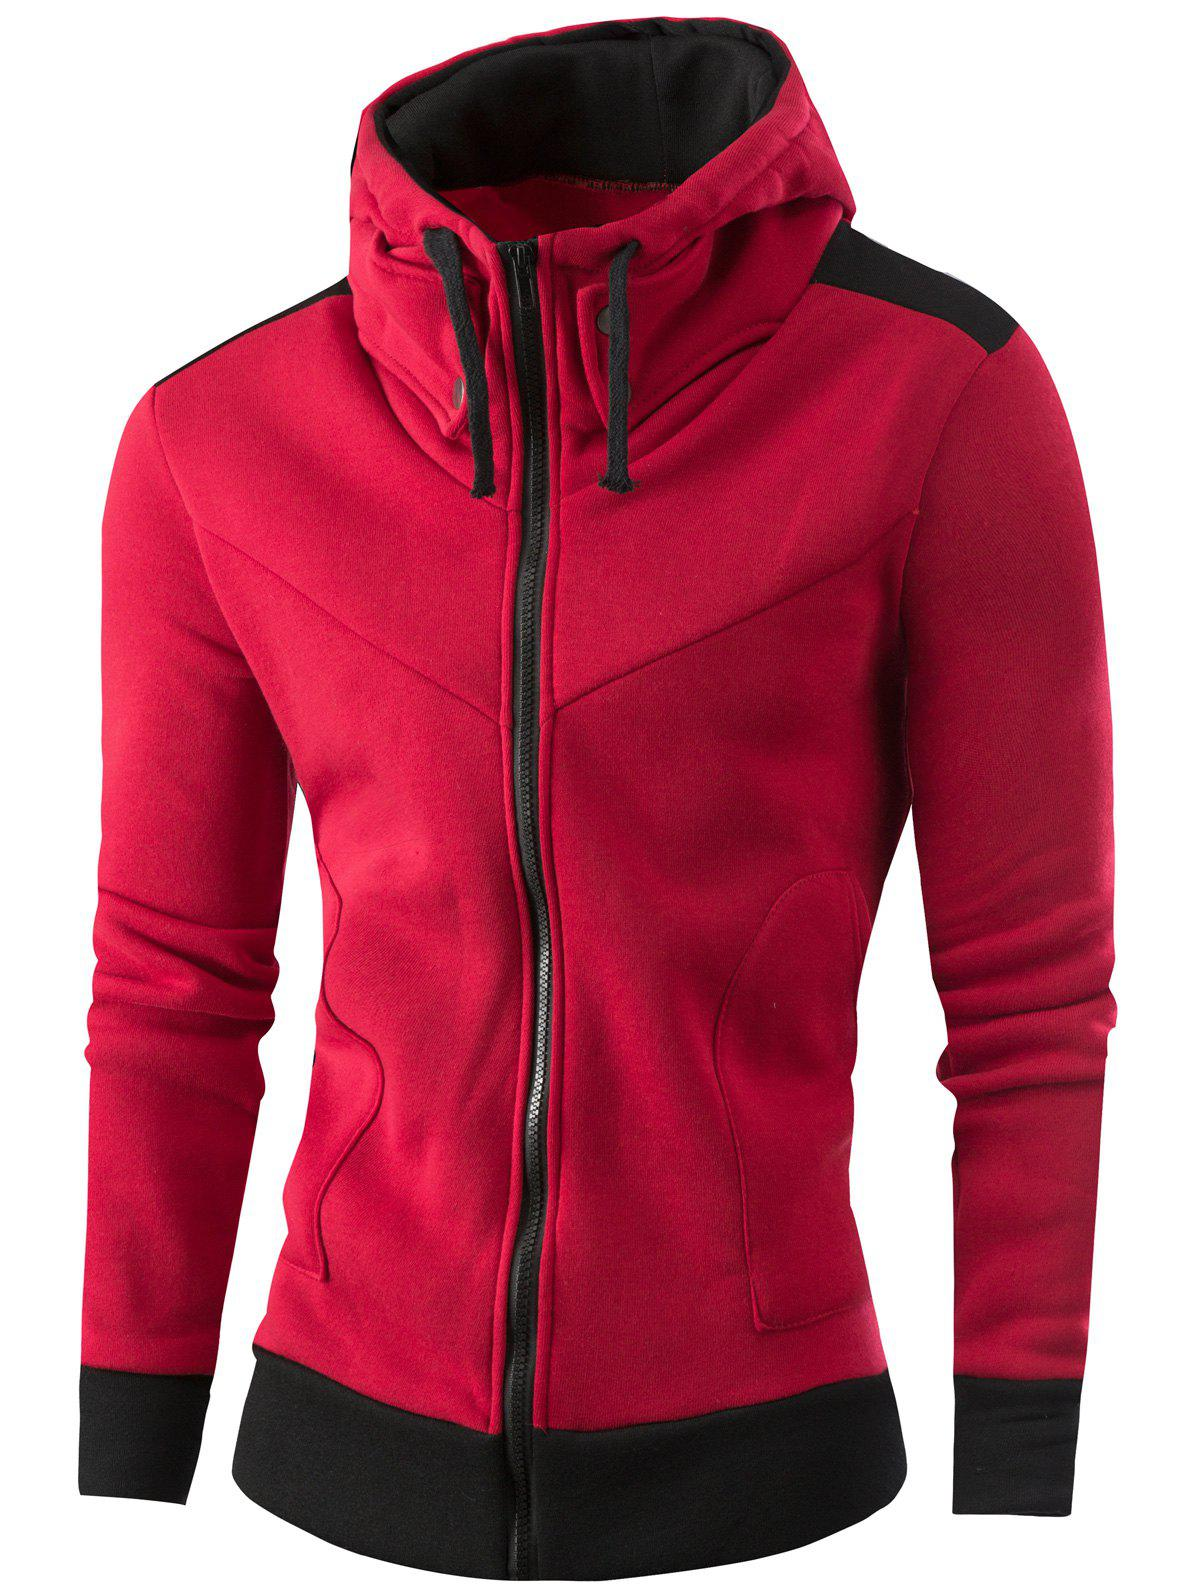 Full Zipper Deux Tons Sweat à Capuche - Rouge vineux M